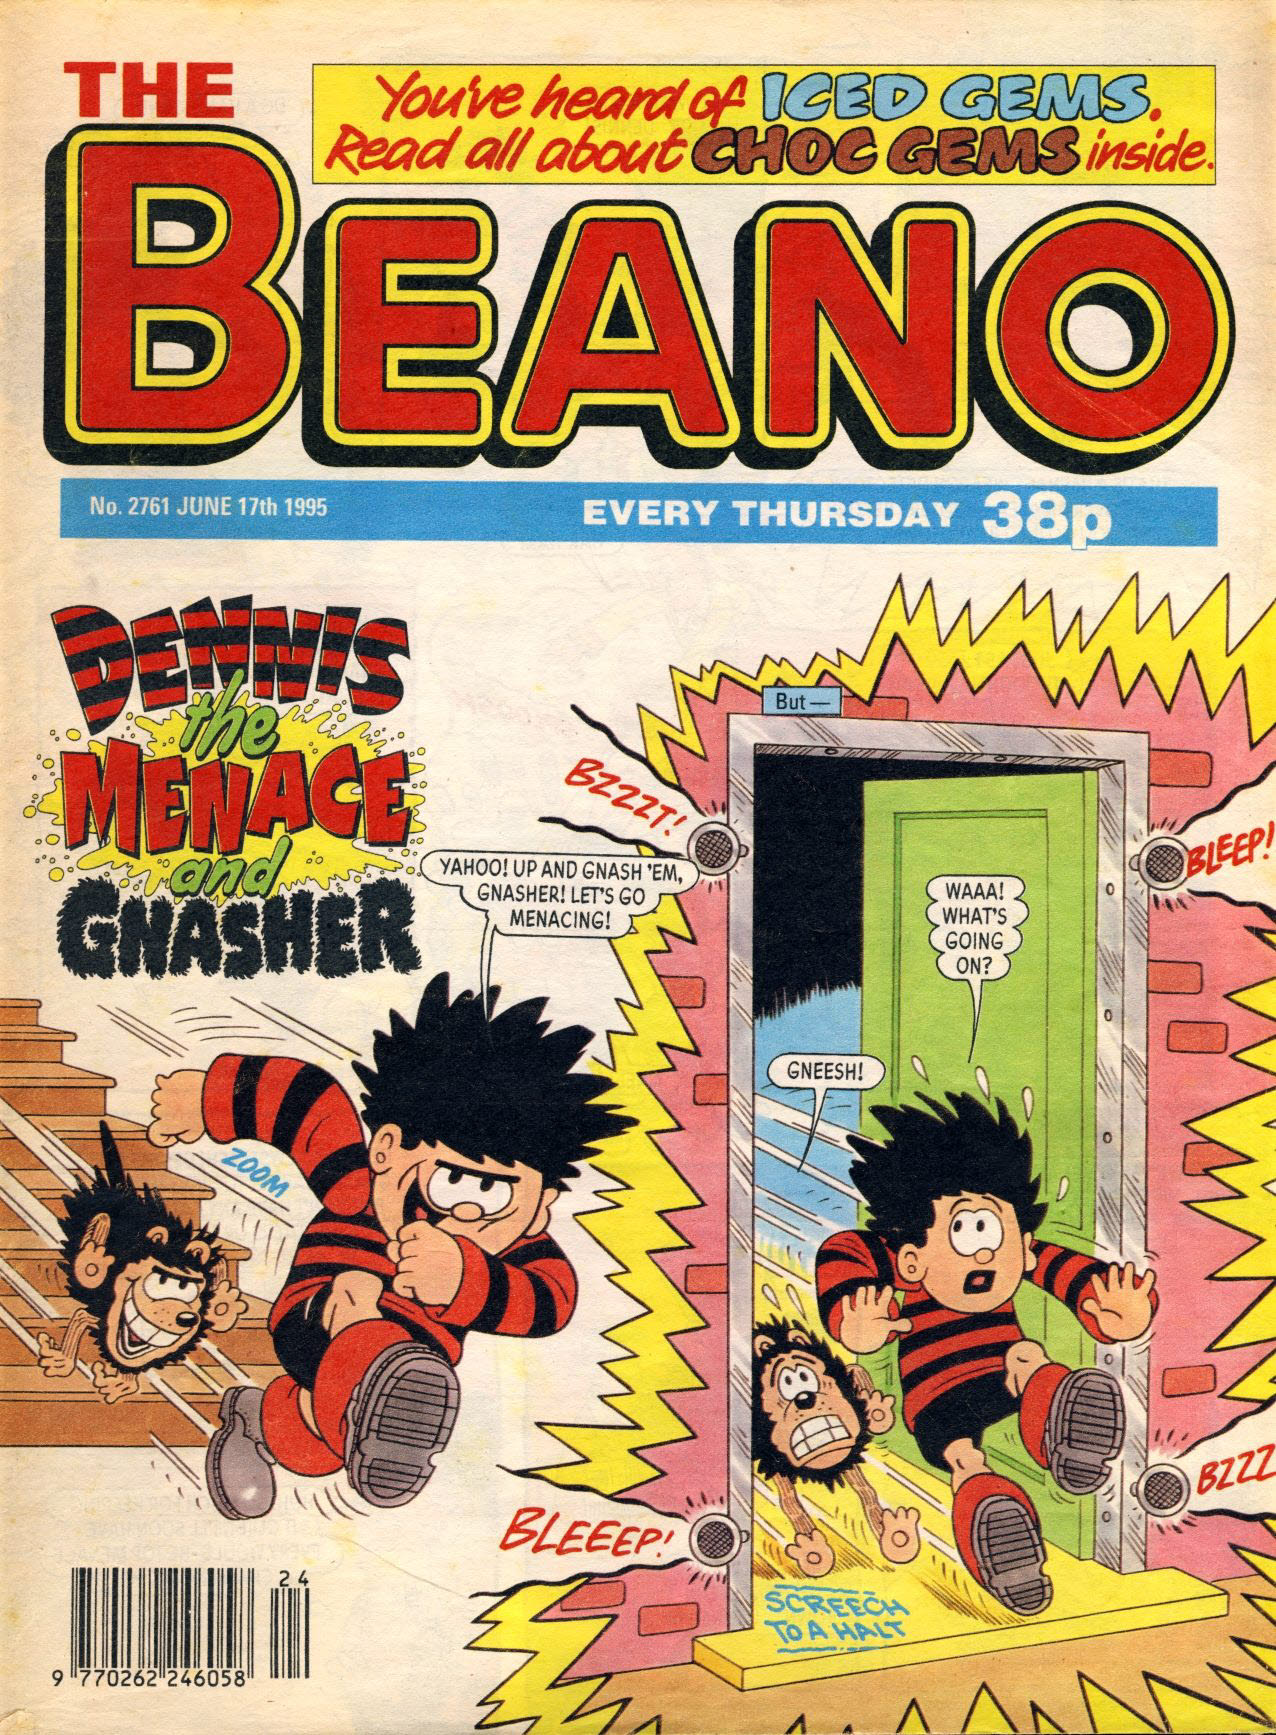 1995 June 17th BEANO vintage comic Good Gift Christmas Present Birthday Anniversary ref107 A vintage comic in good read condition. Please see larger photo and full description for details.